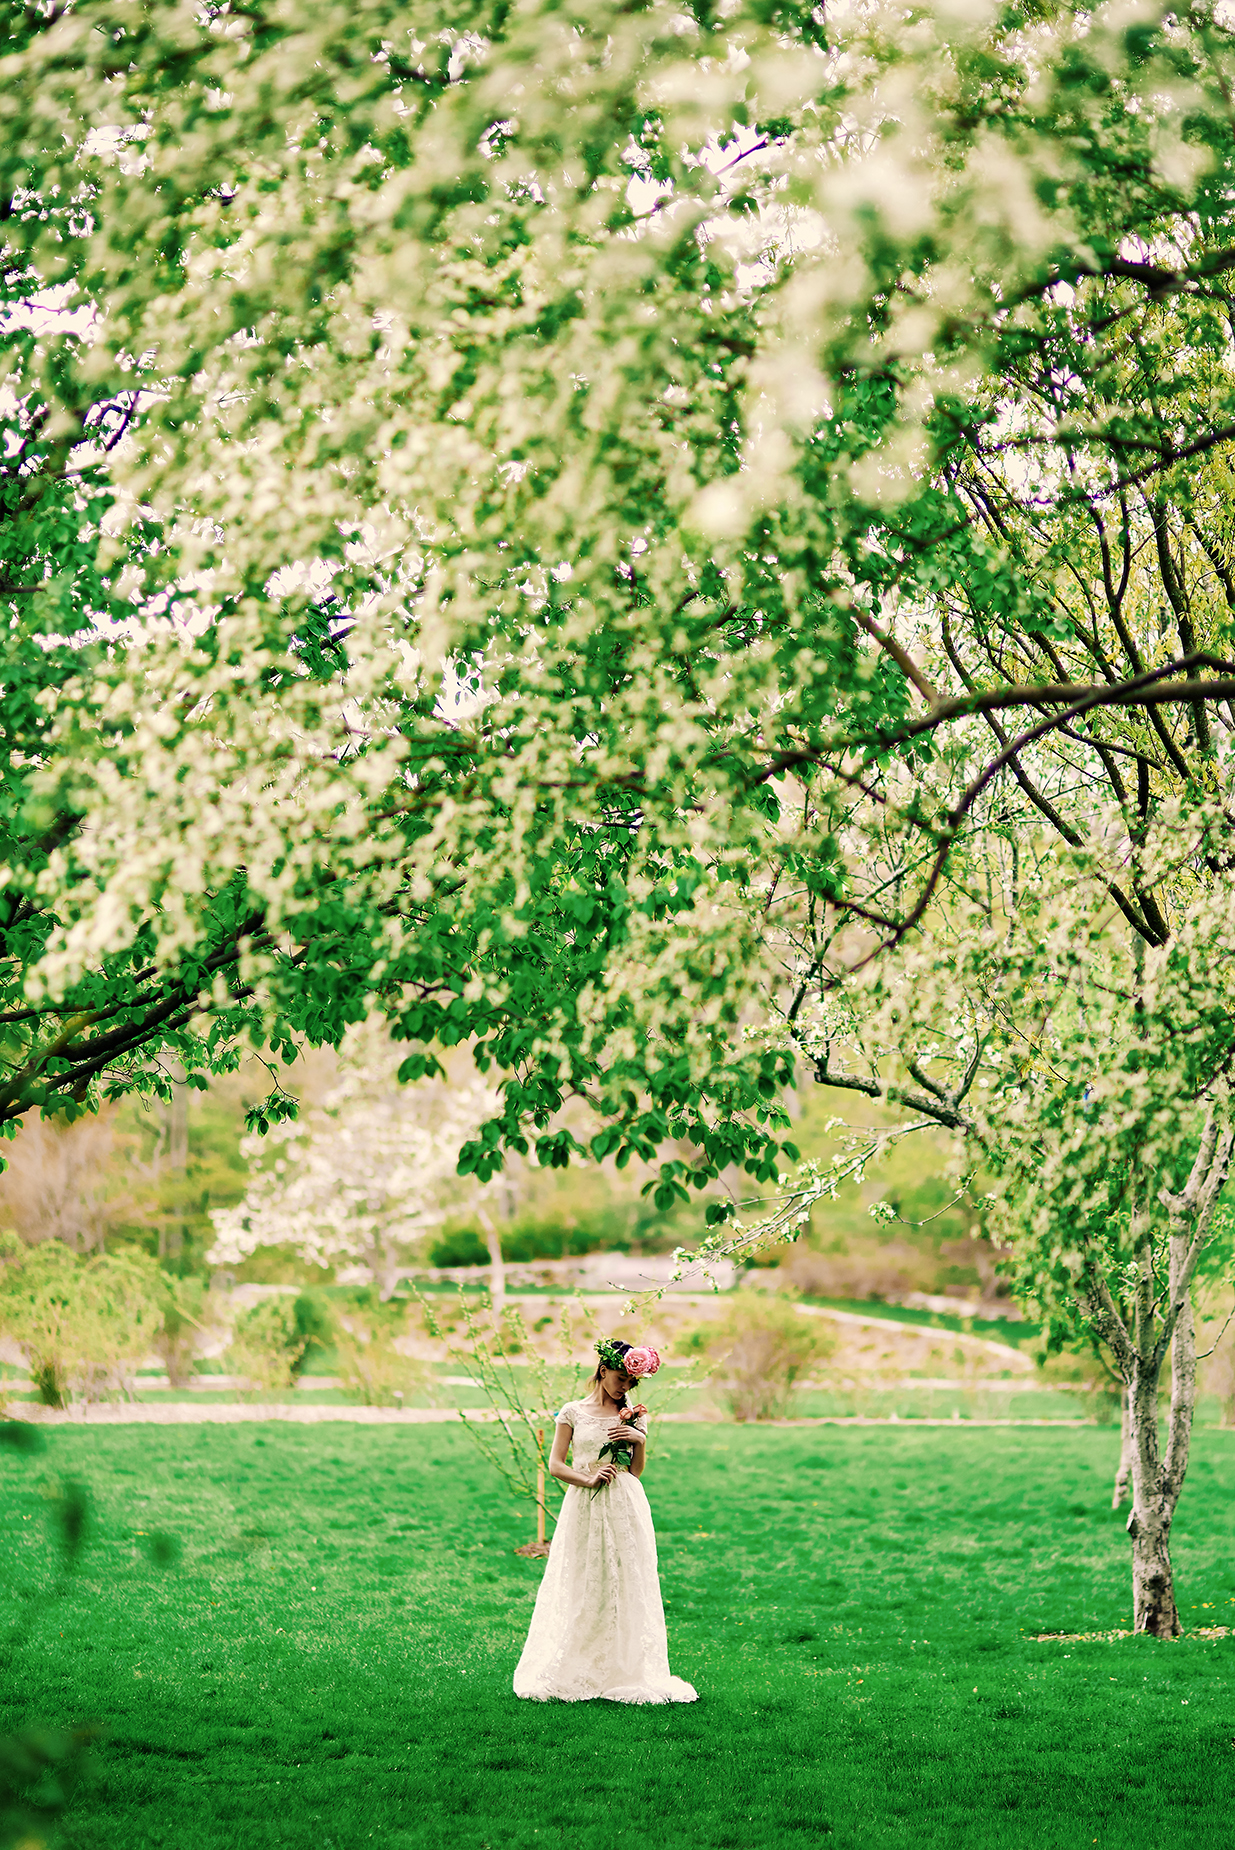 bride-by-pond-in-park-new-england-wedding.jpg